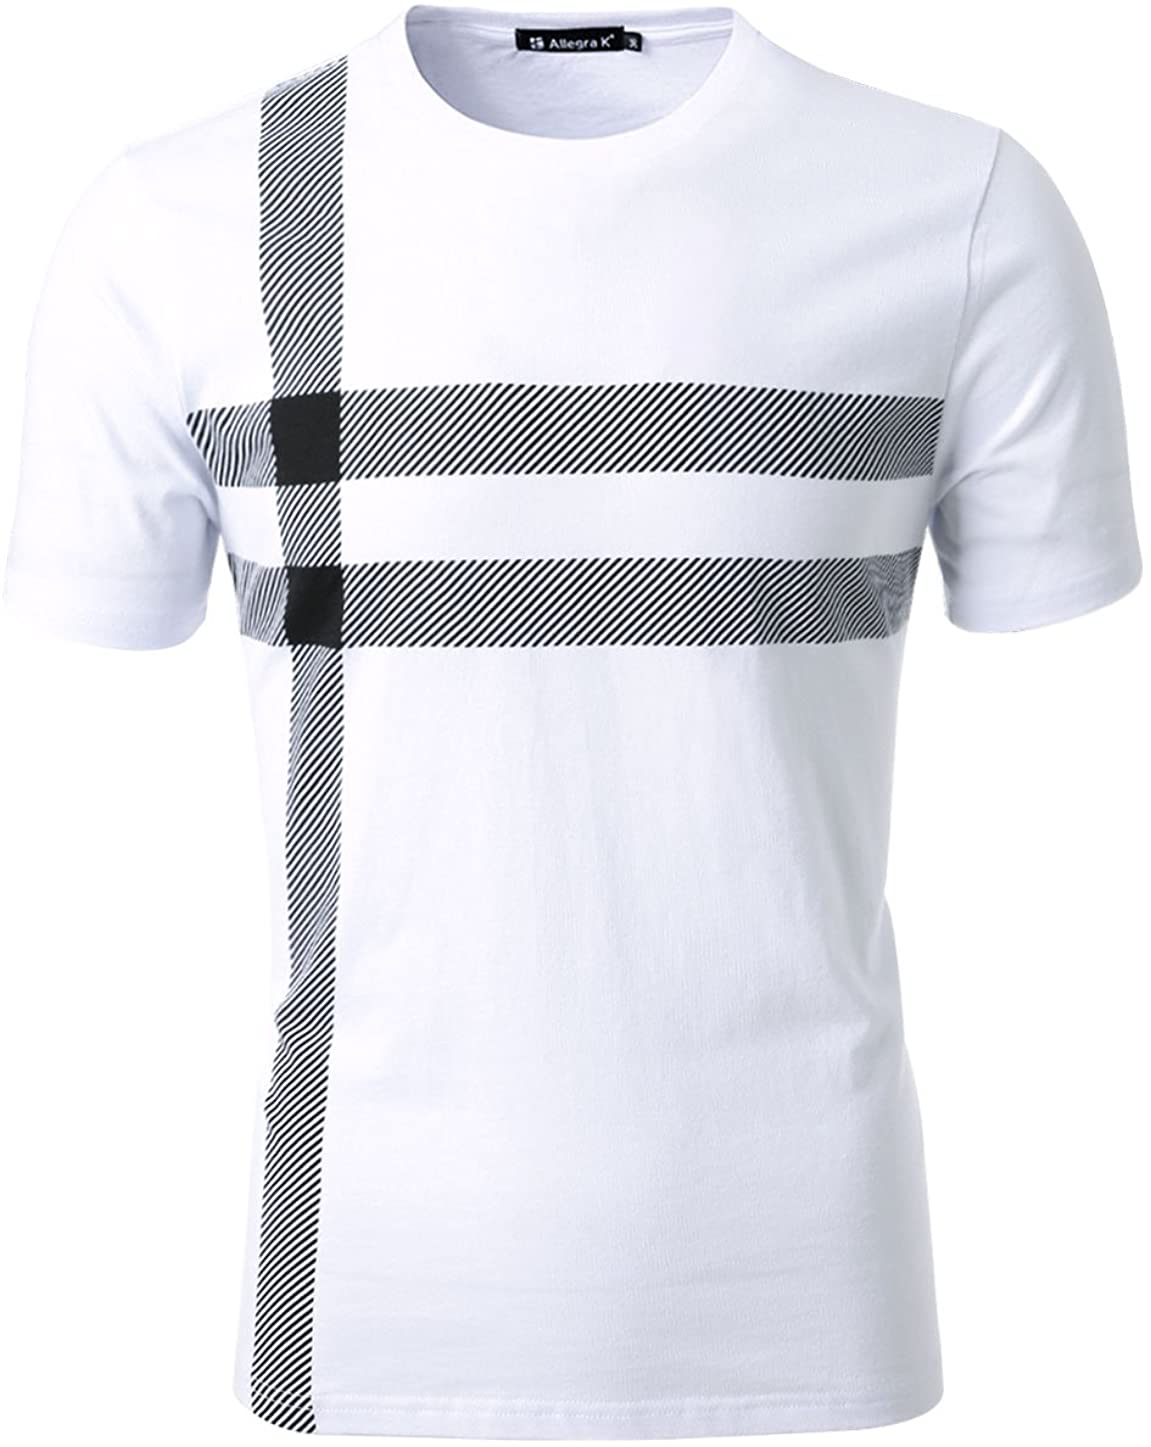 uxcell Men Casual T Shirt Short Sleeves Striped Crew Neck Tee